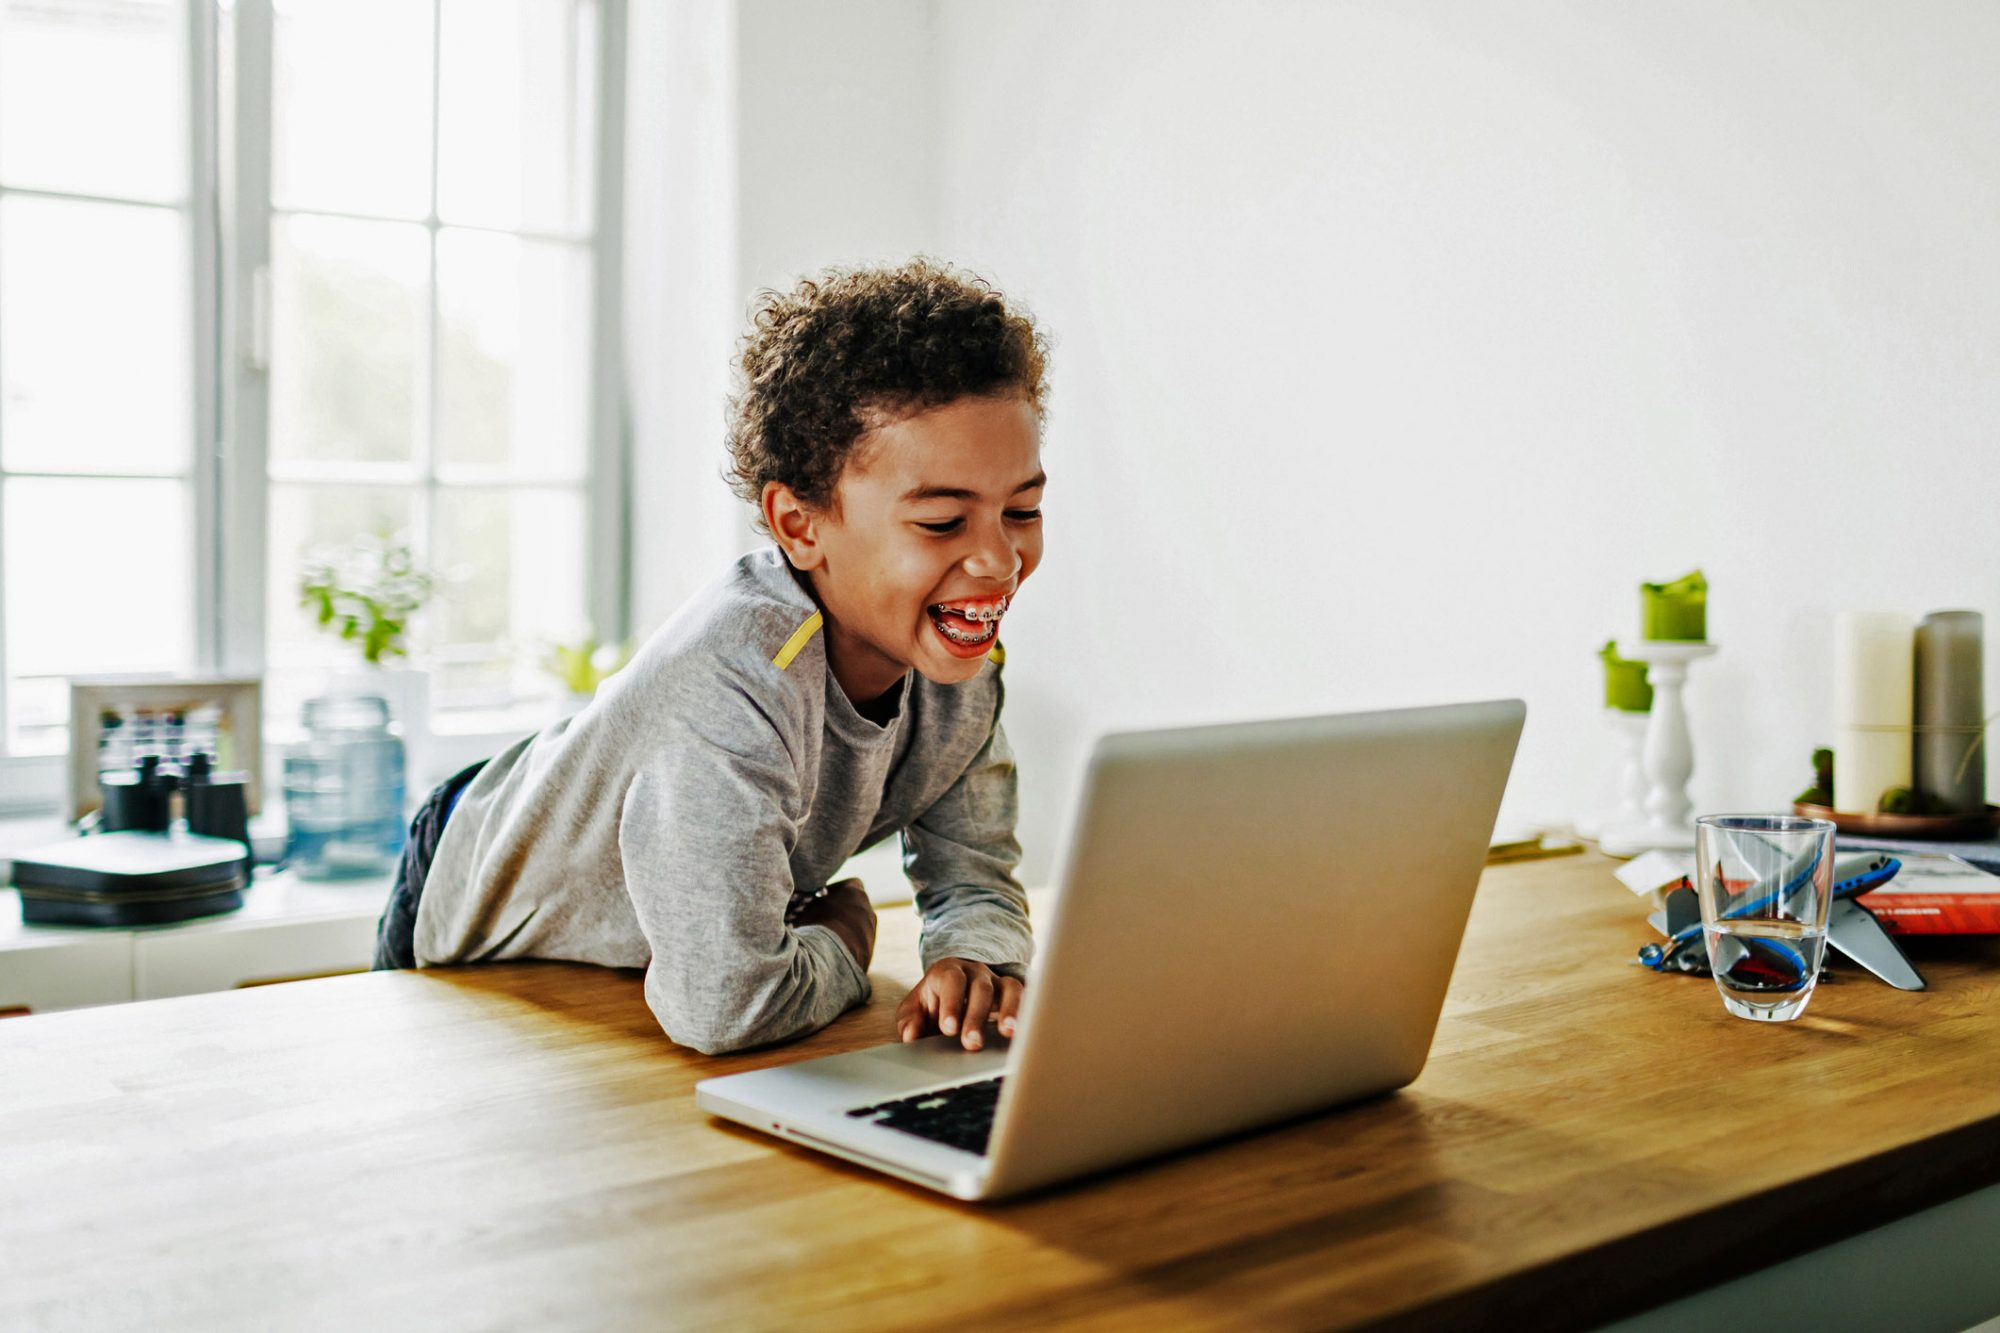 An image of a young boy on a laptop.